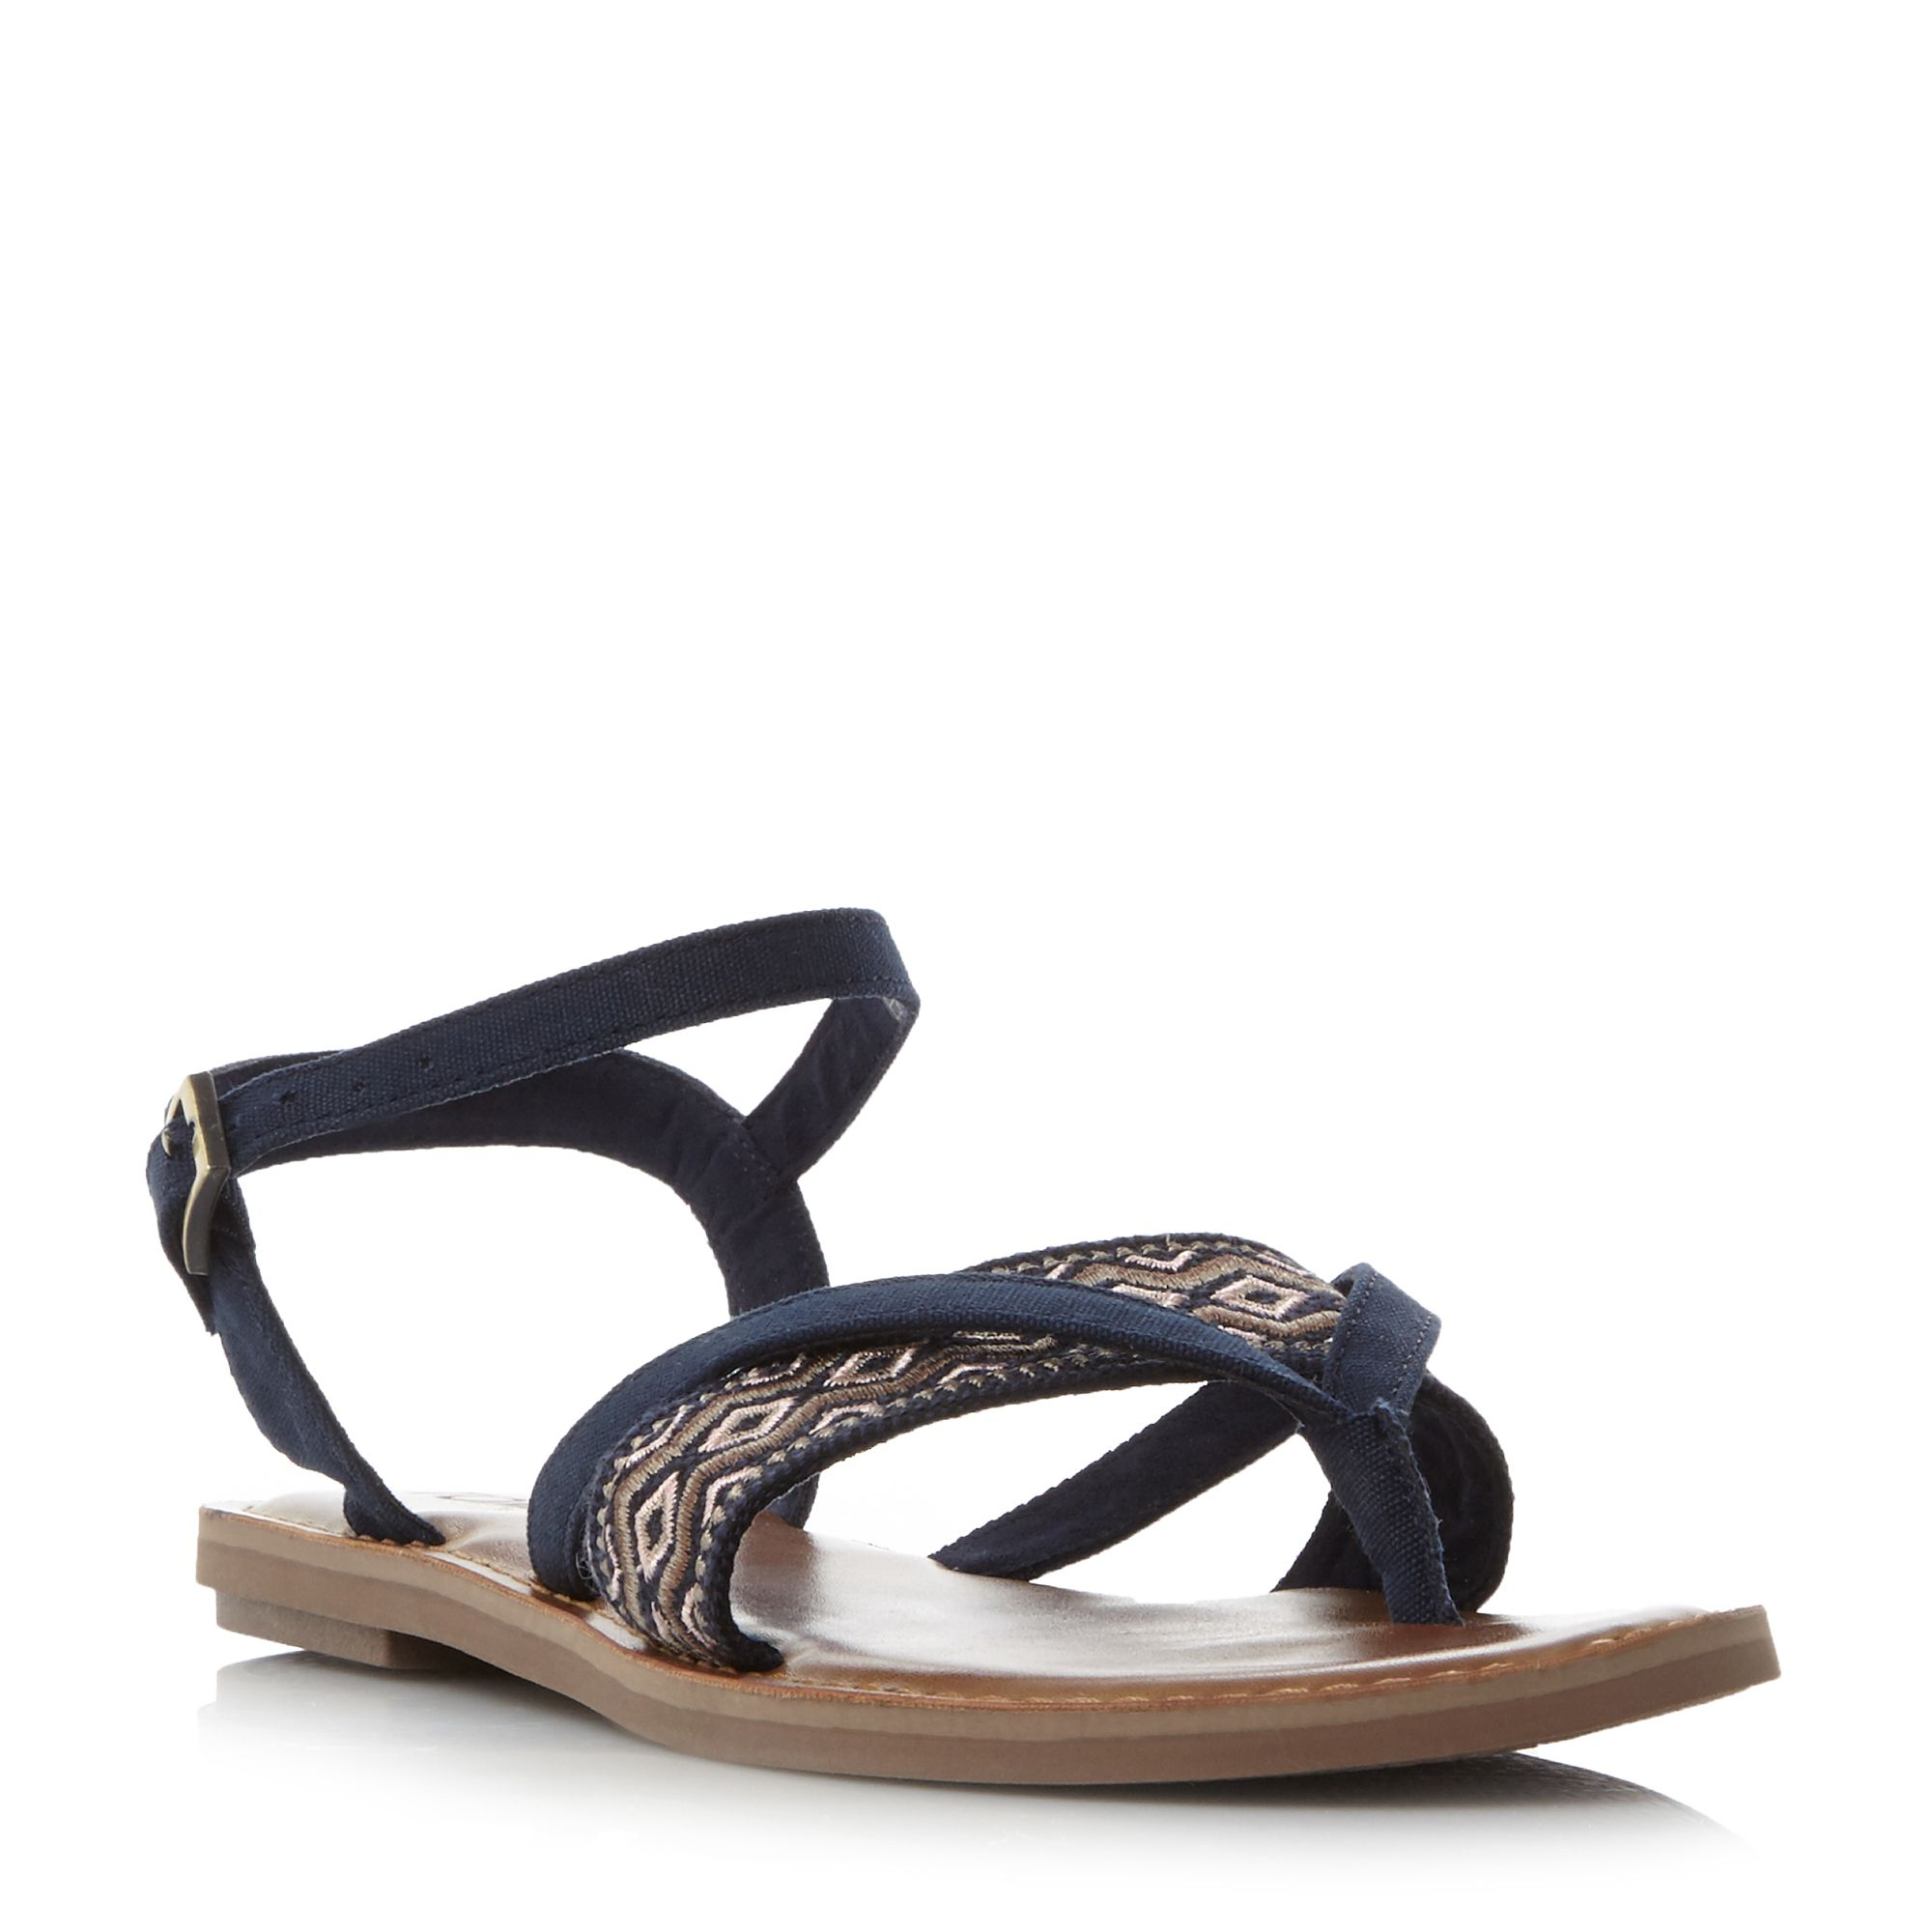 Toms Lexie Embroidered Flat Sandals, Blue